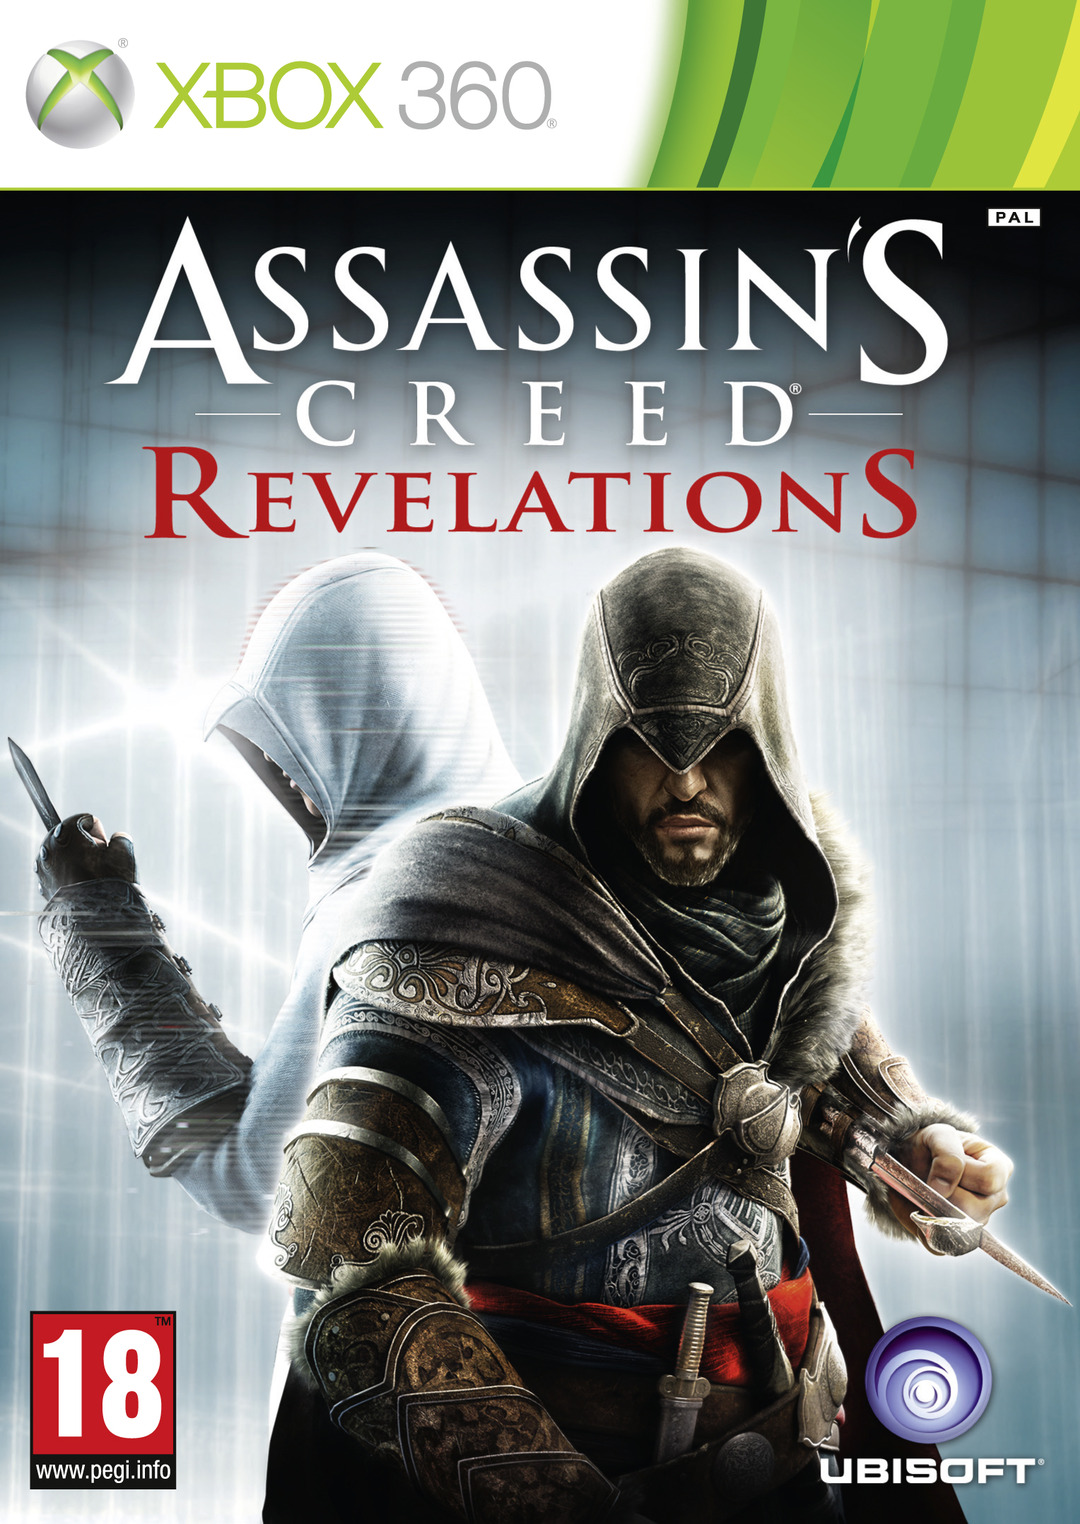 jaquette du jeu vidéo Assassin's Creed: Revelations